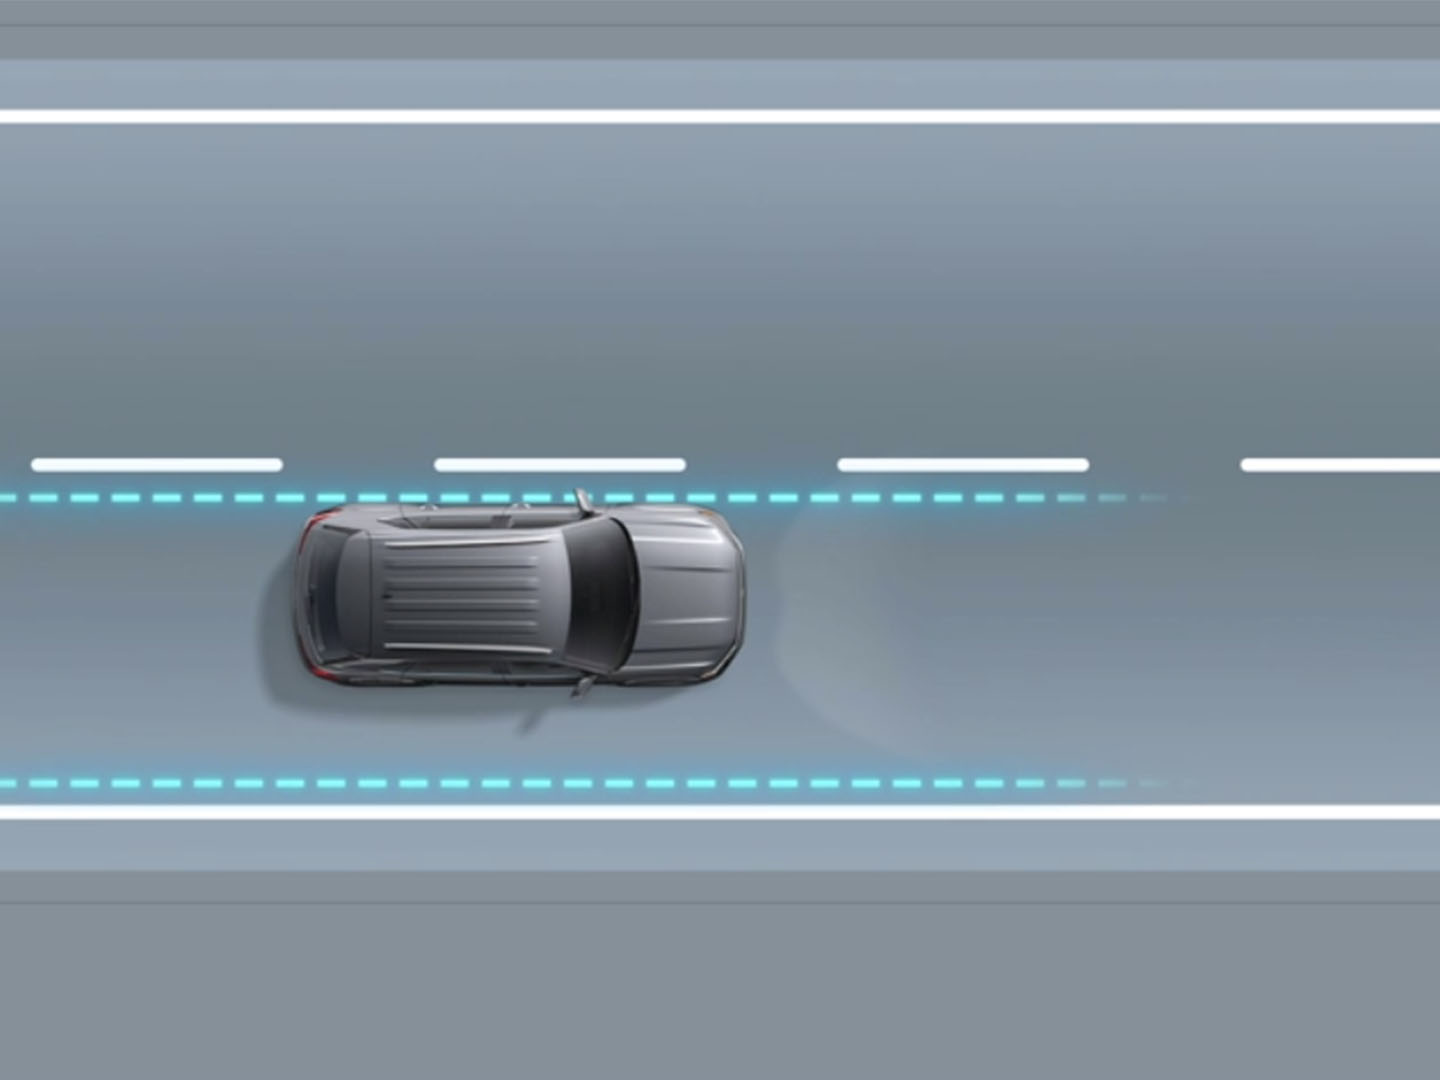 Vw Lane Assist Technology